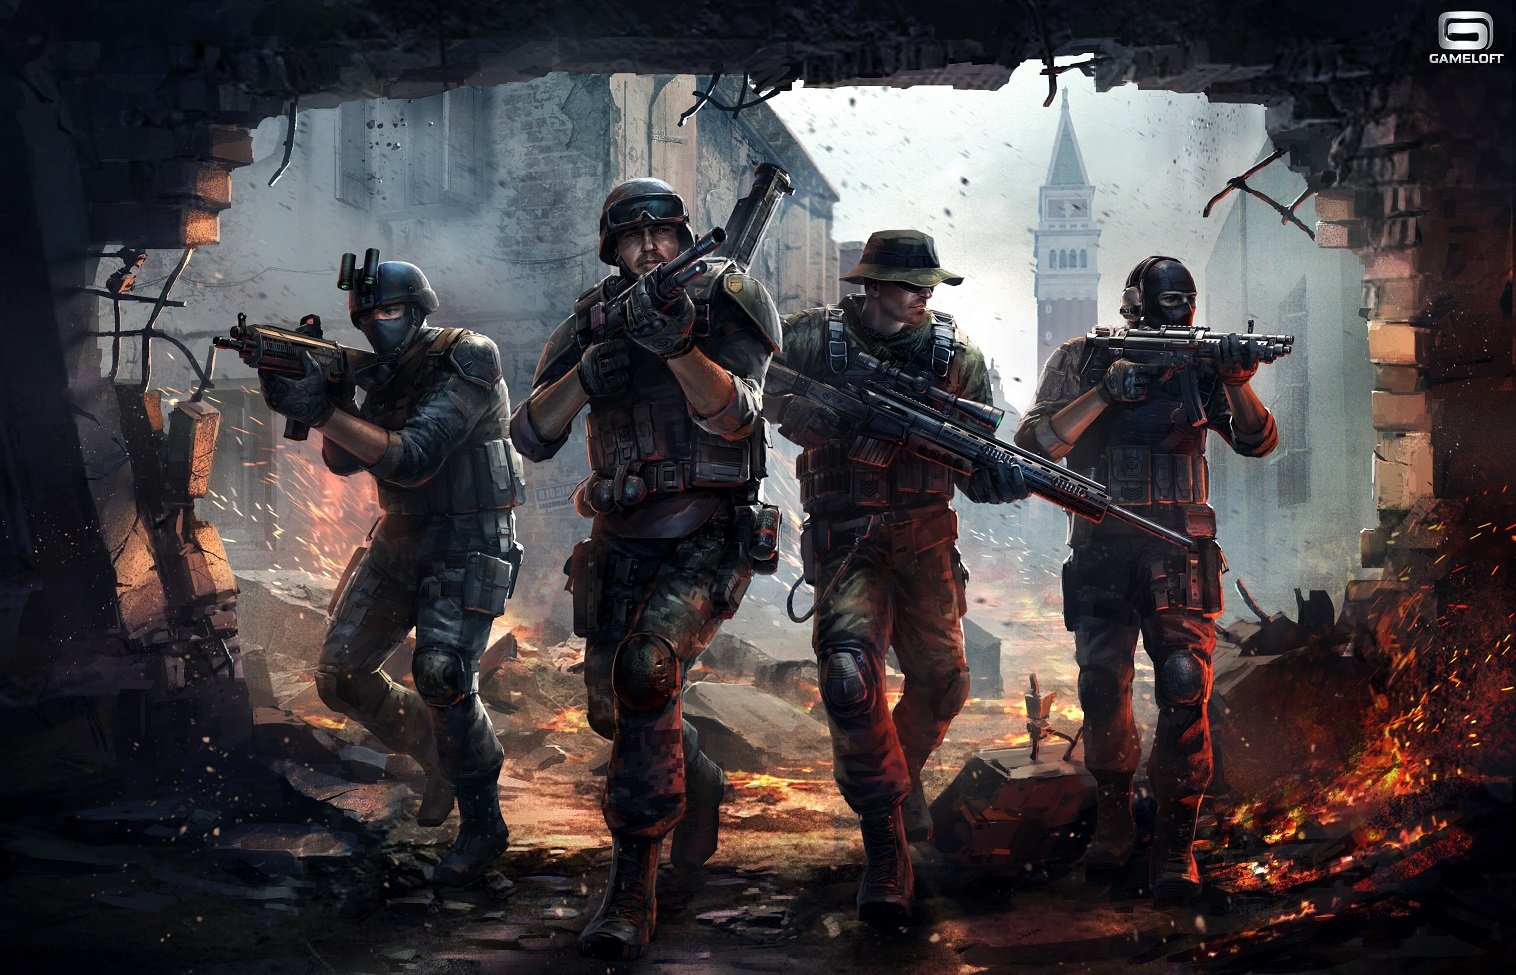 Download modern combat 5 Games Android Free | modern ...